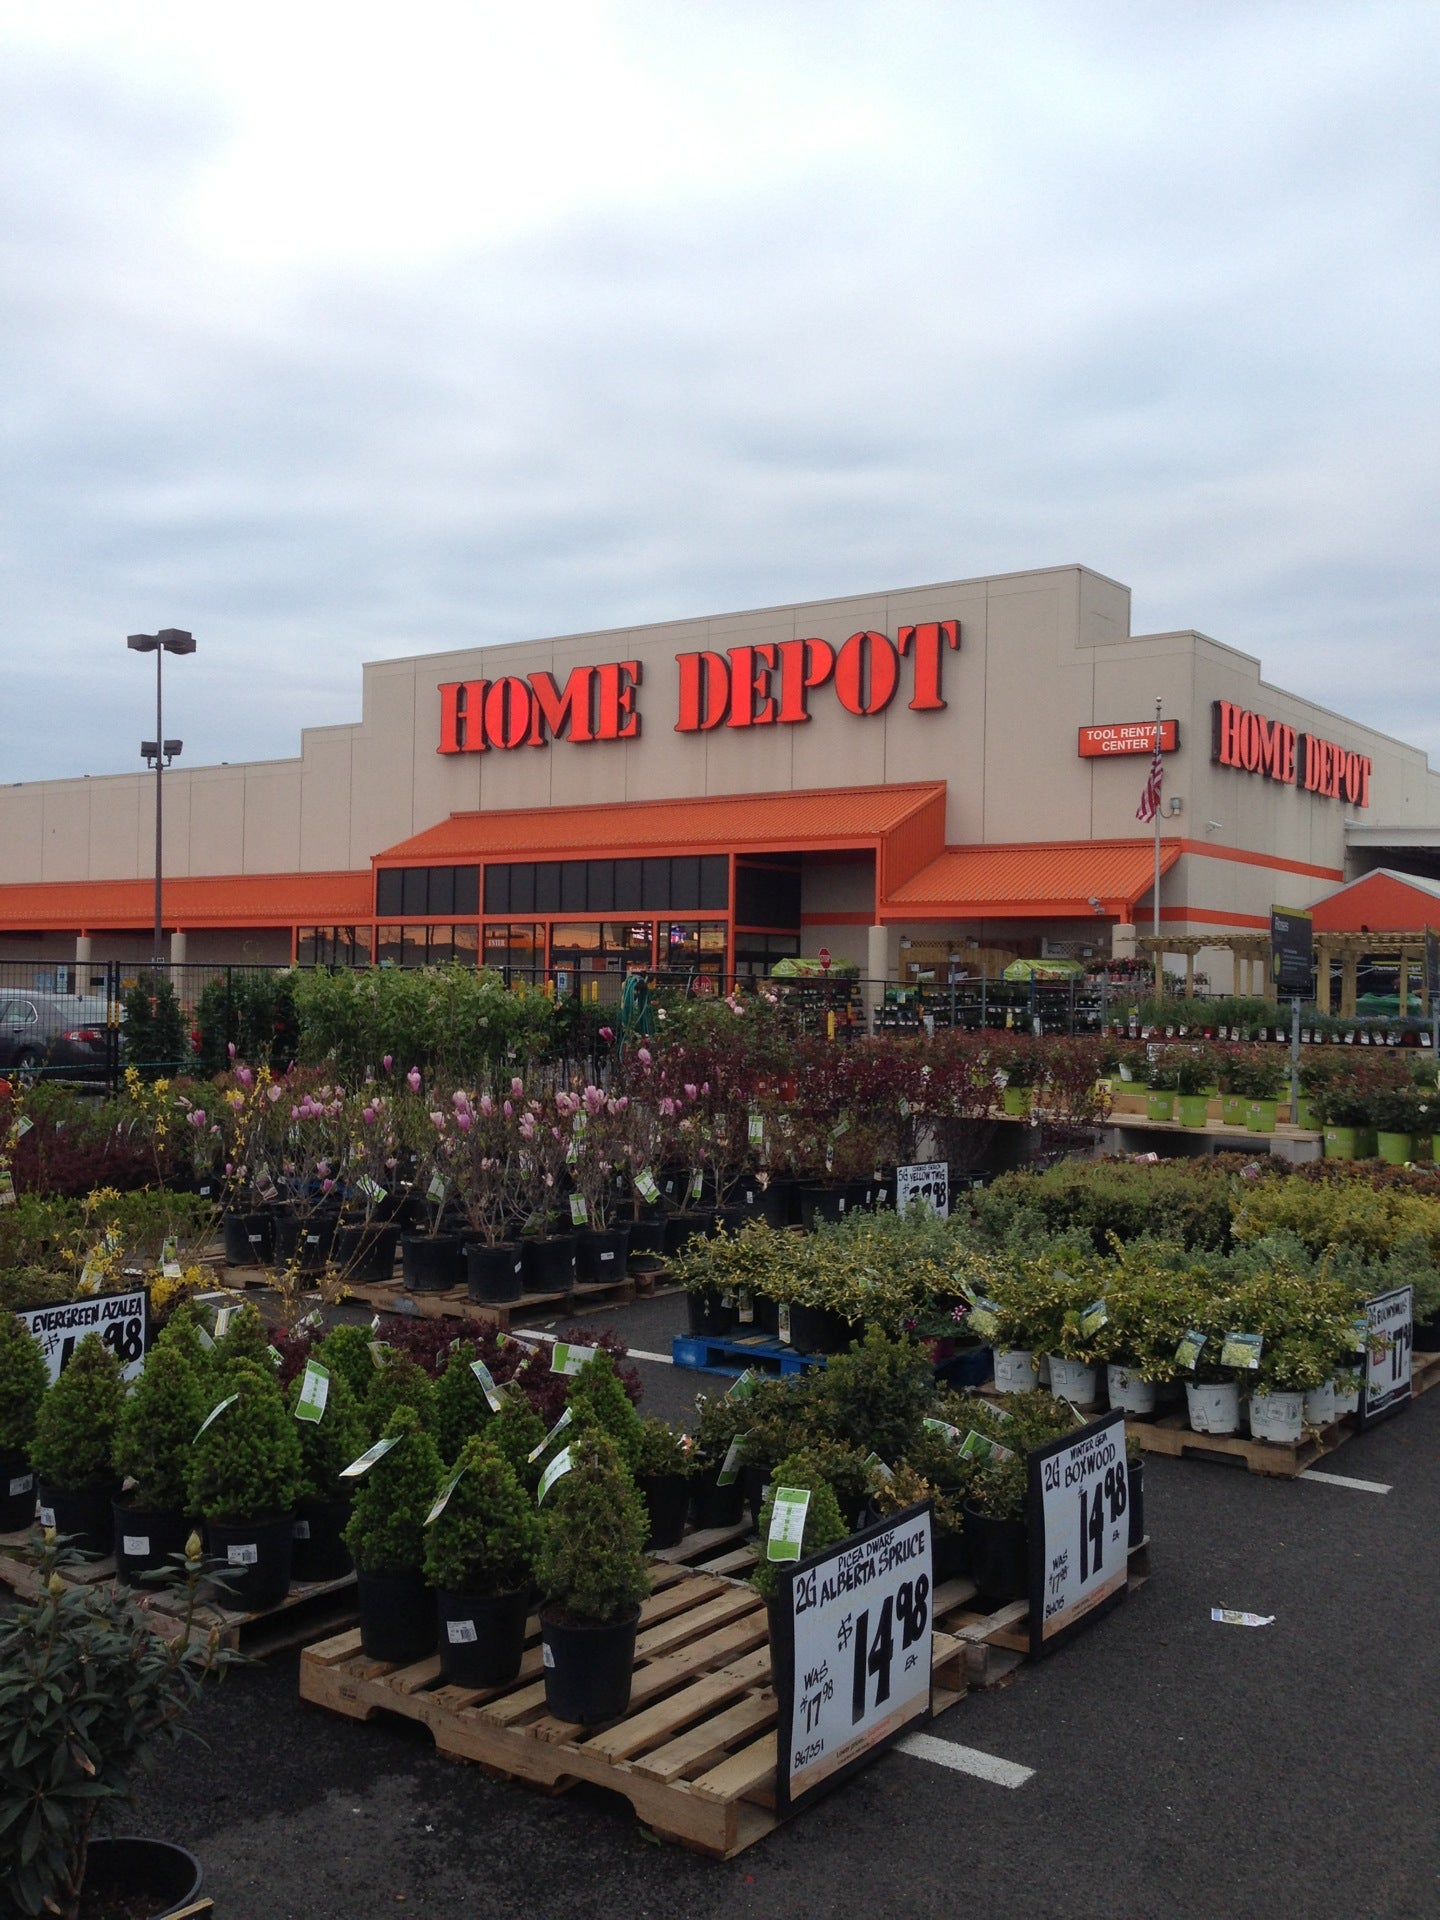 The Home Depot at 1232 W North Ave Chicago IL